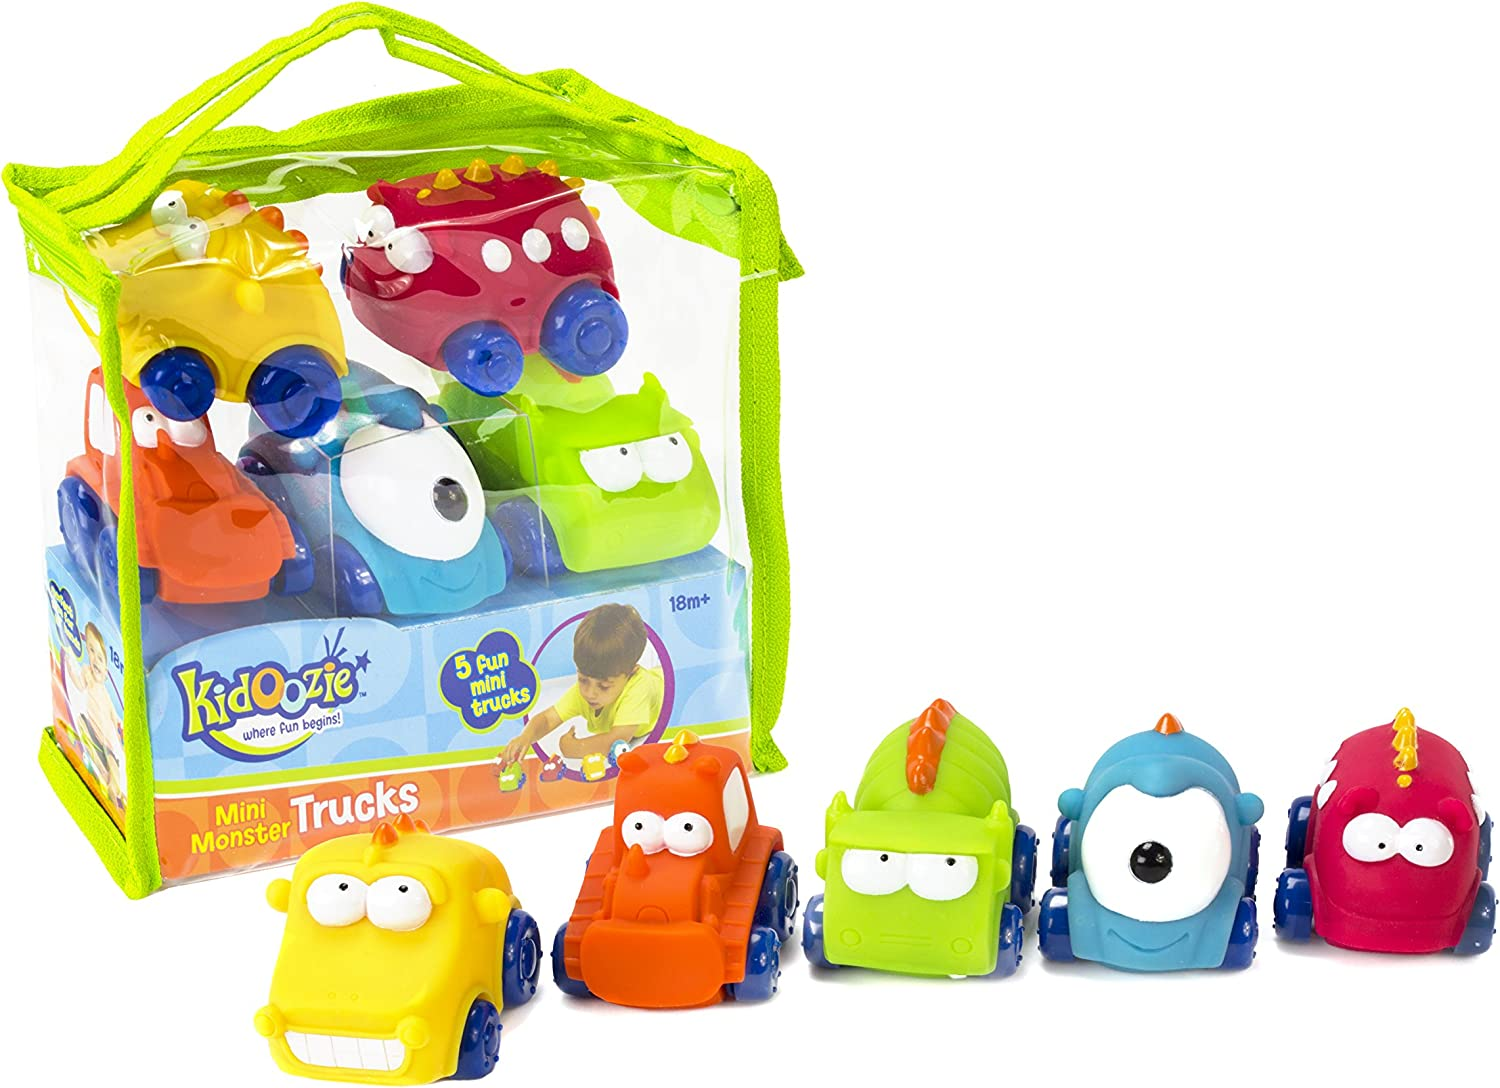 Kidoozie Super beauty product restock quality top! Mini Some reservation Monster Trucks Beneficial Teaches – Roleplay